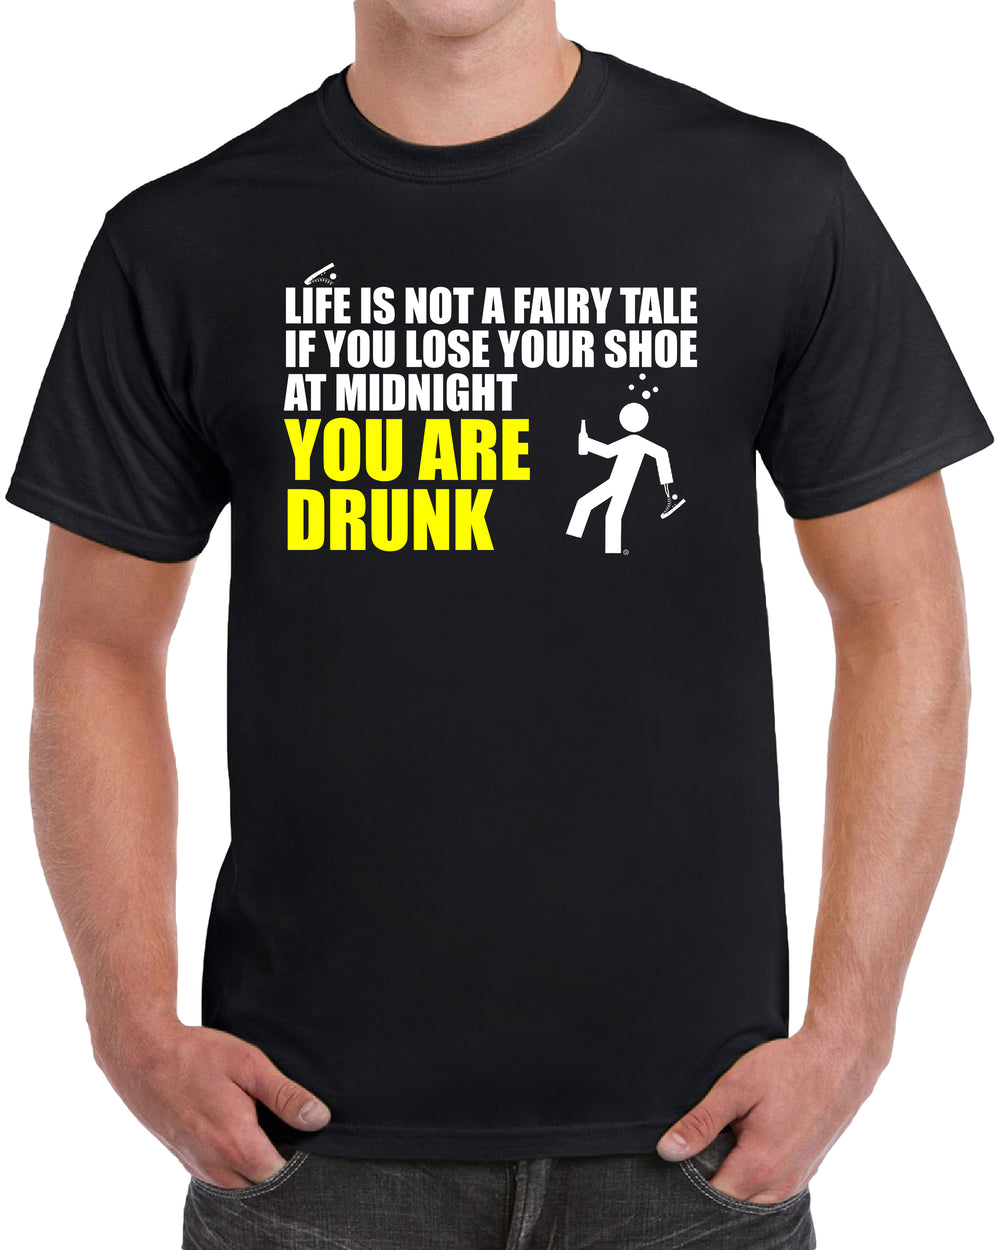 Life Is Not A FairyTale, If You Lose Your Shoe At Midnight You Are Drunk - Yellow Solid Print